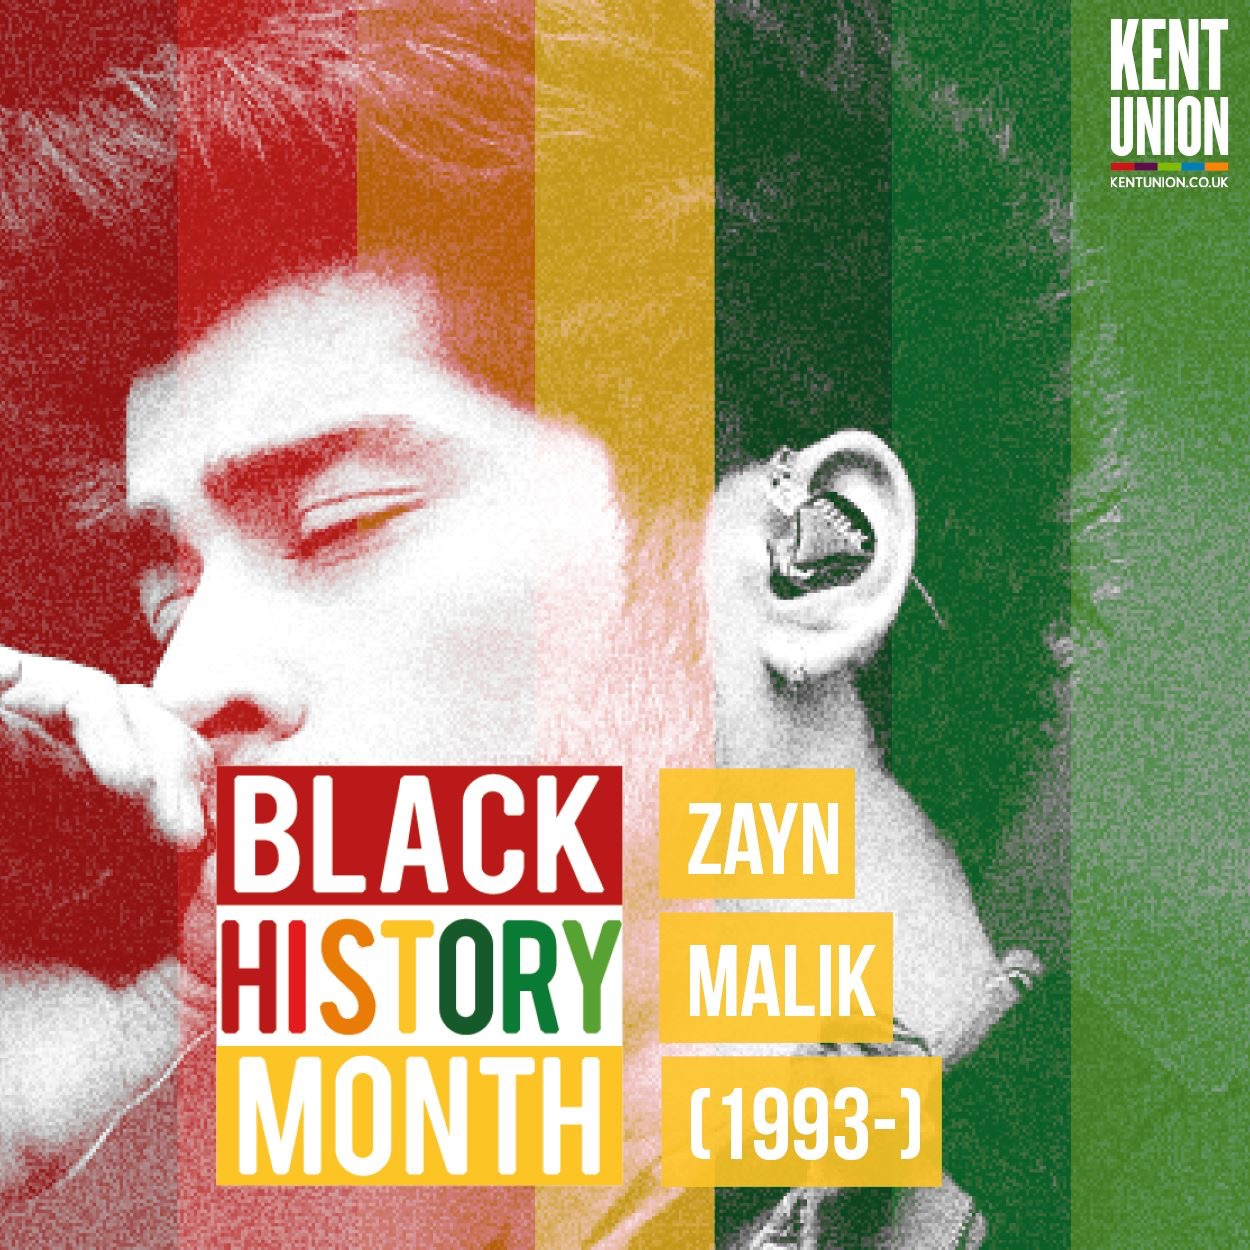 Introducing Zayn Malik and other non-black cornerstones of Black History